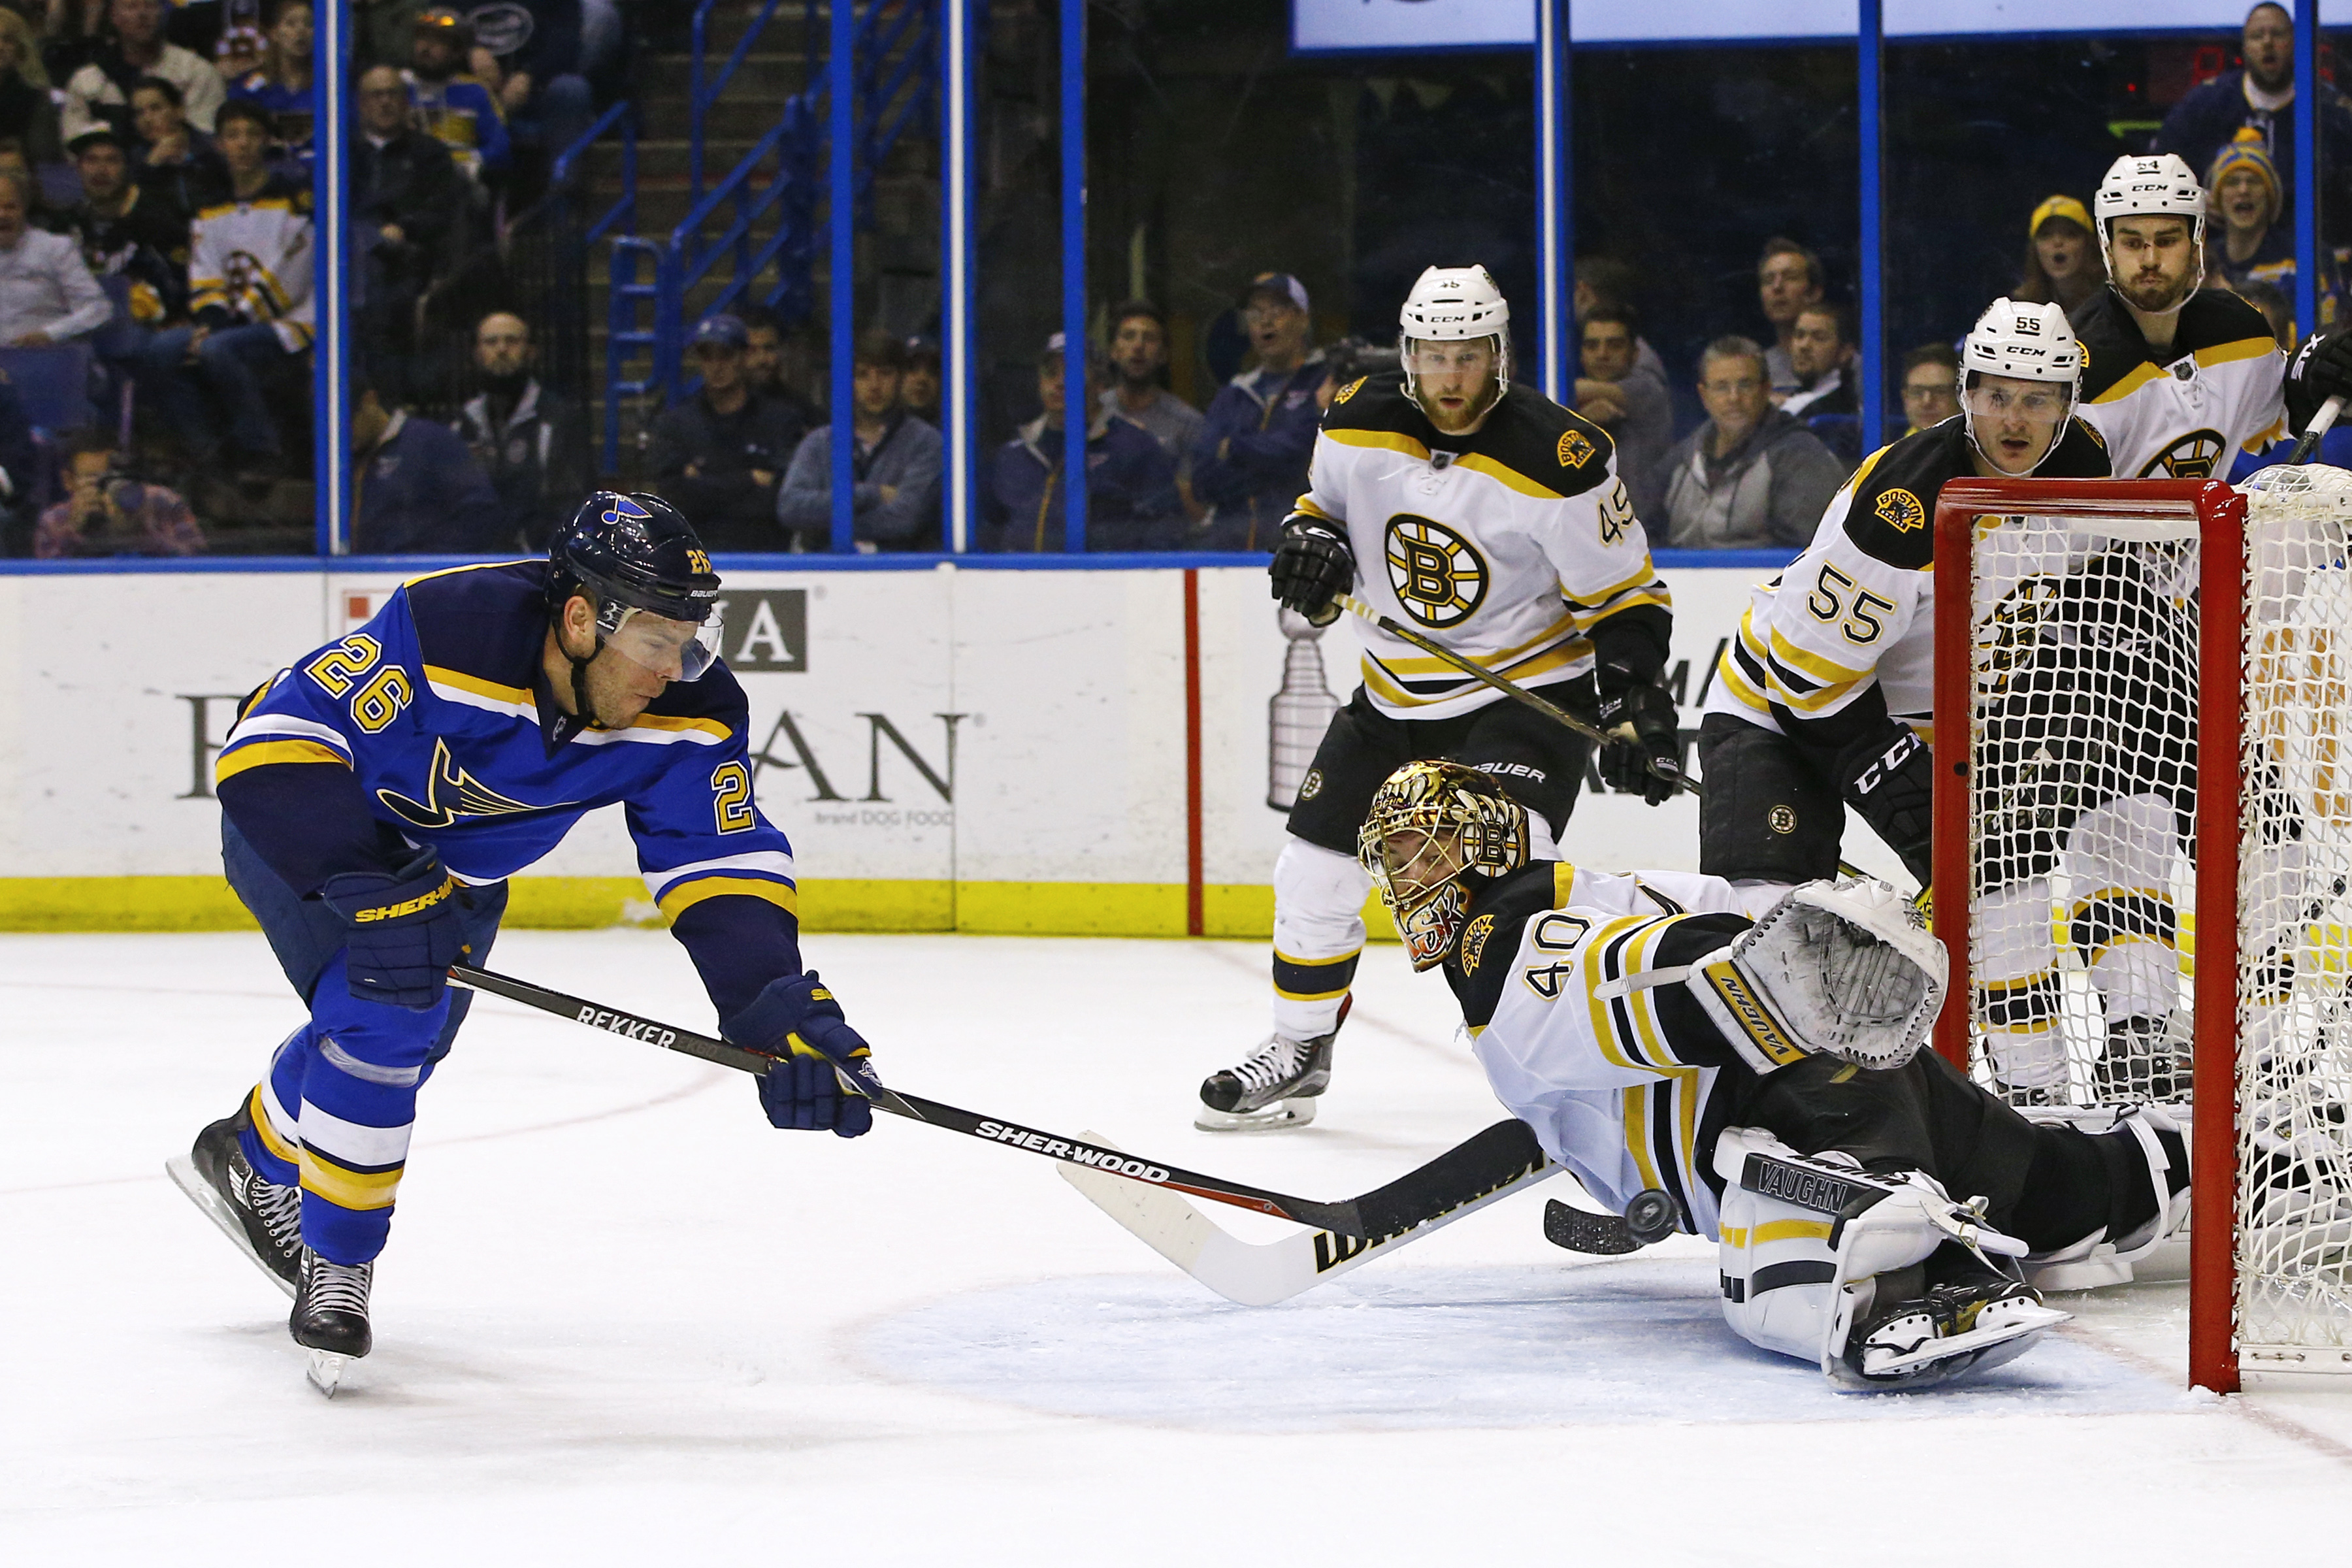 St. Louis Blues Paul Stastny, left, scores a goal past the outstretched glove of Boston Bruins goalie Tuukka Rask, of Finland, during the second period of an NHL hockey game Friday, April 1, 2016, in St. Louis. (AP Photo/Billy Hurst)